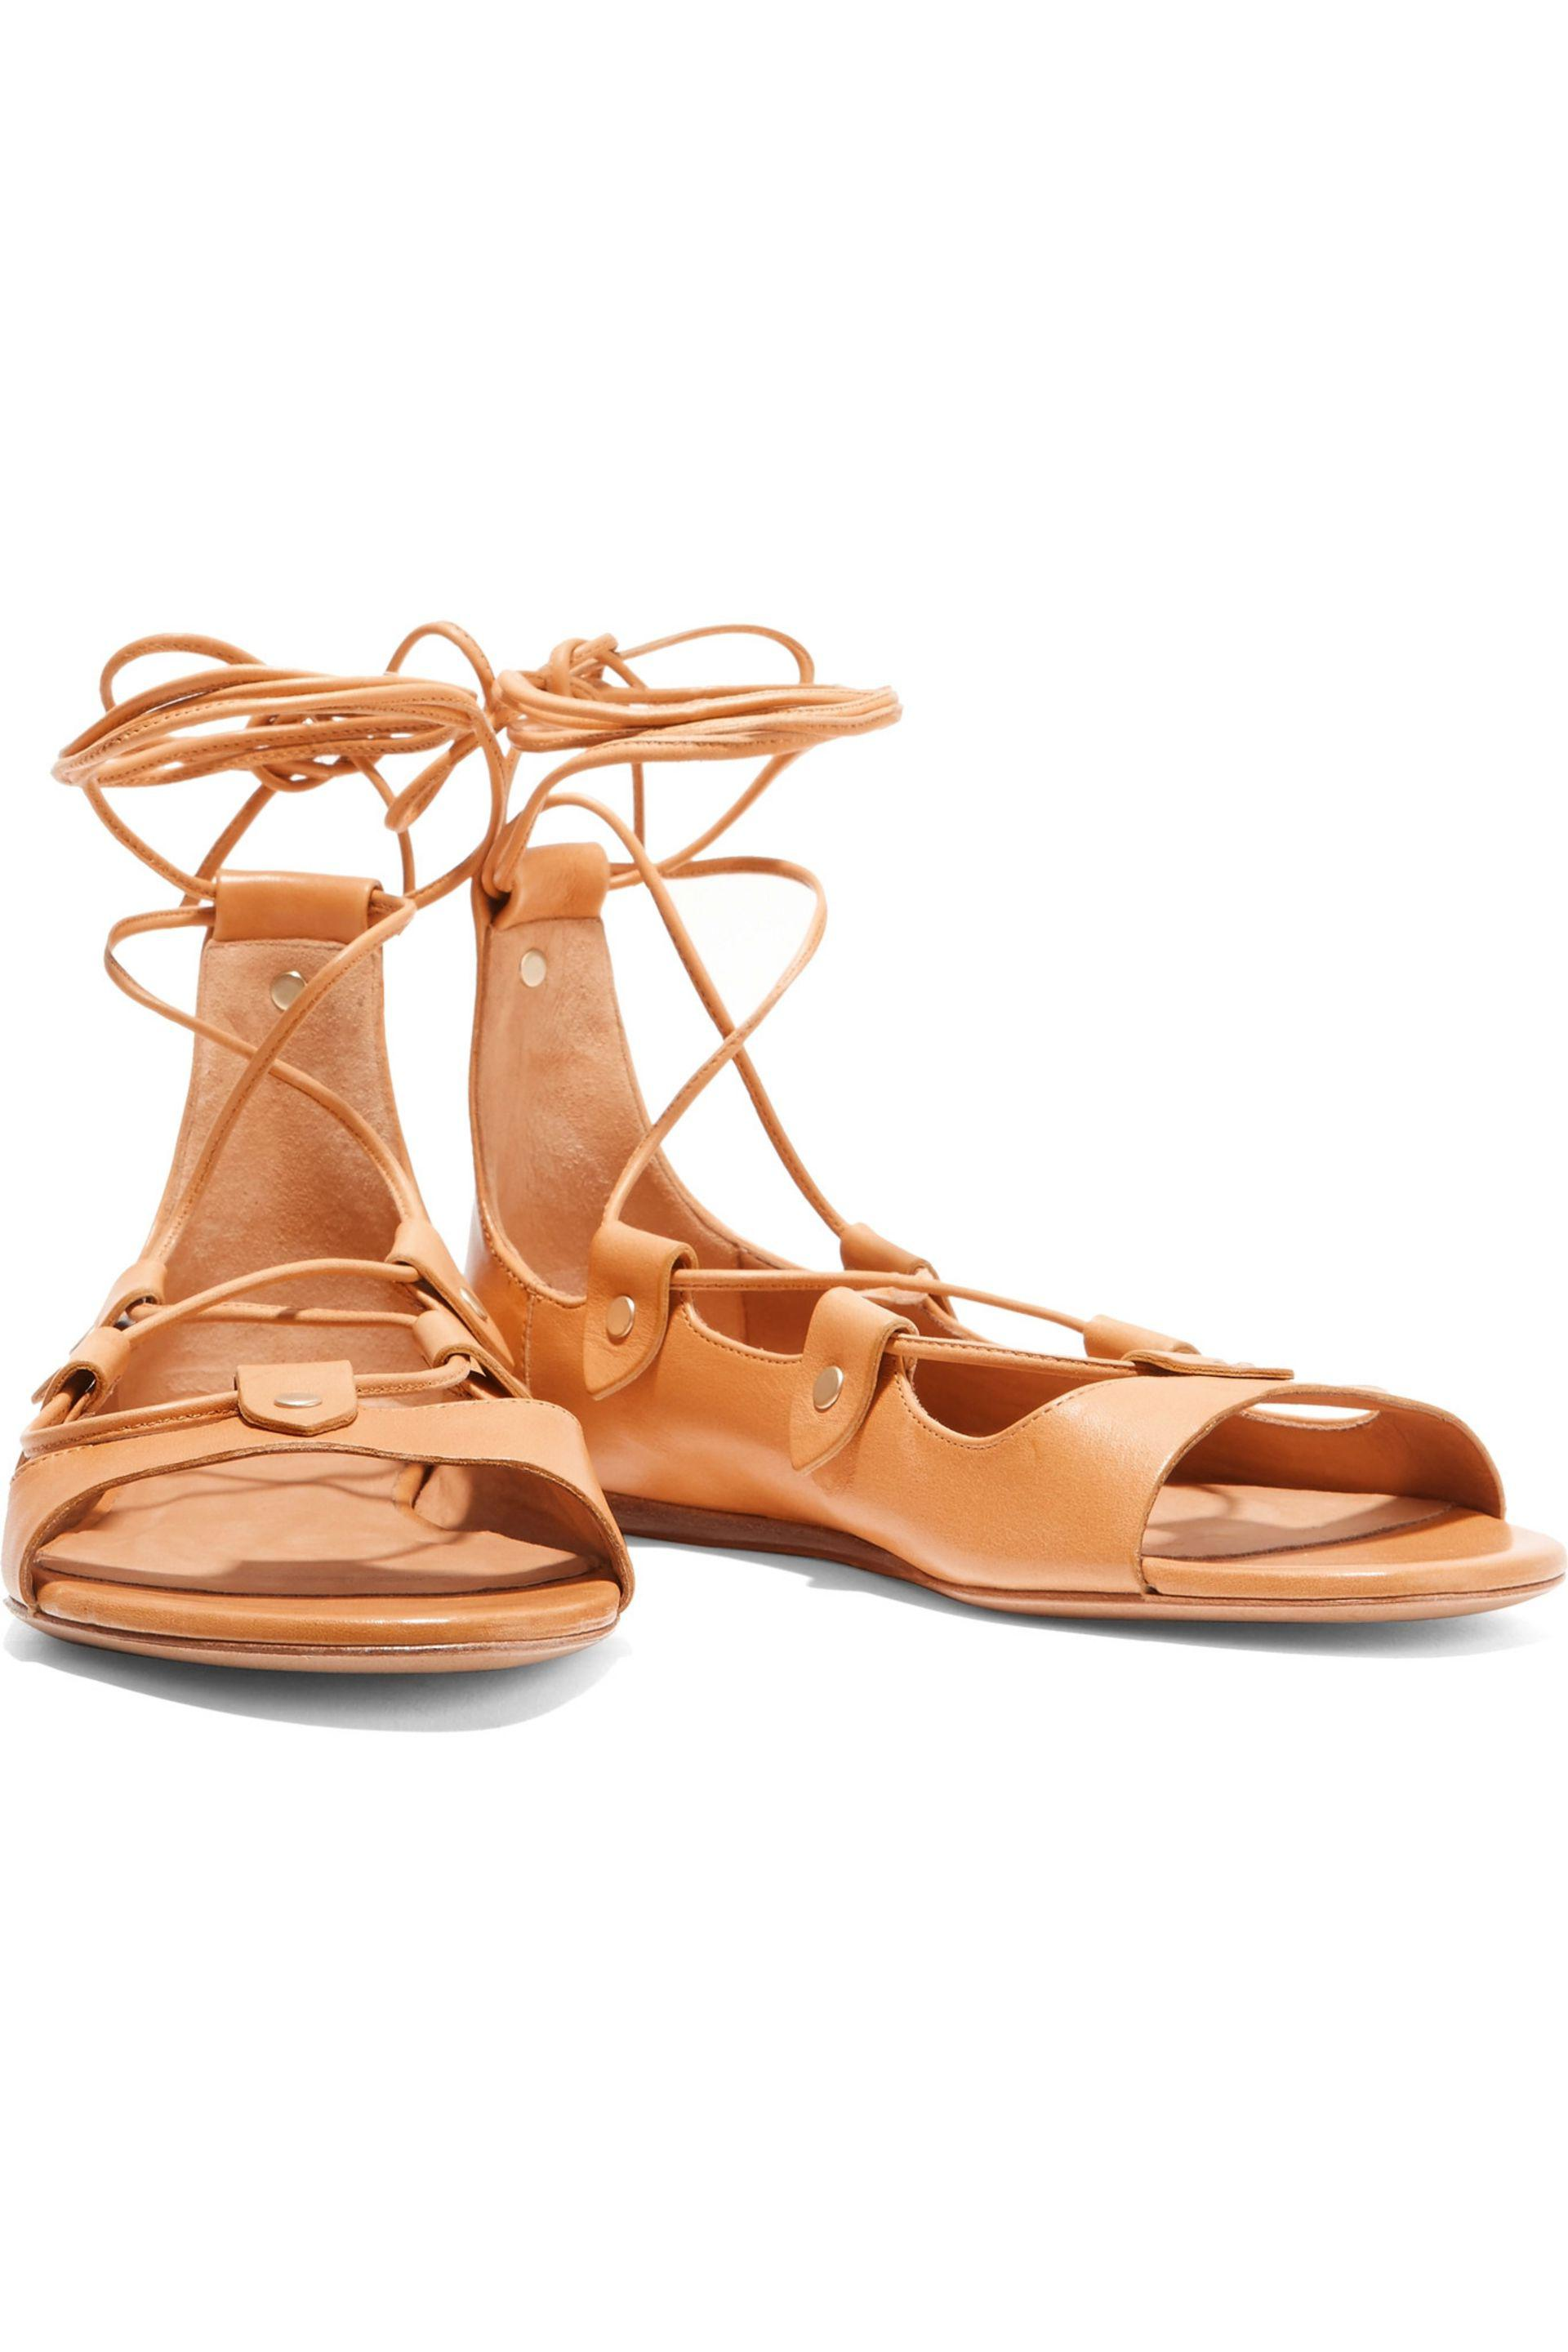 Isabel Marant   Multicolor Alisa Lace-up Leather Sandals   Lyst. View  Fullscreen